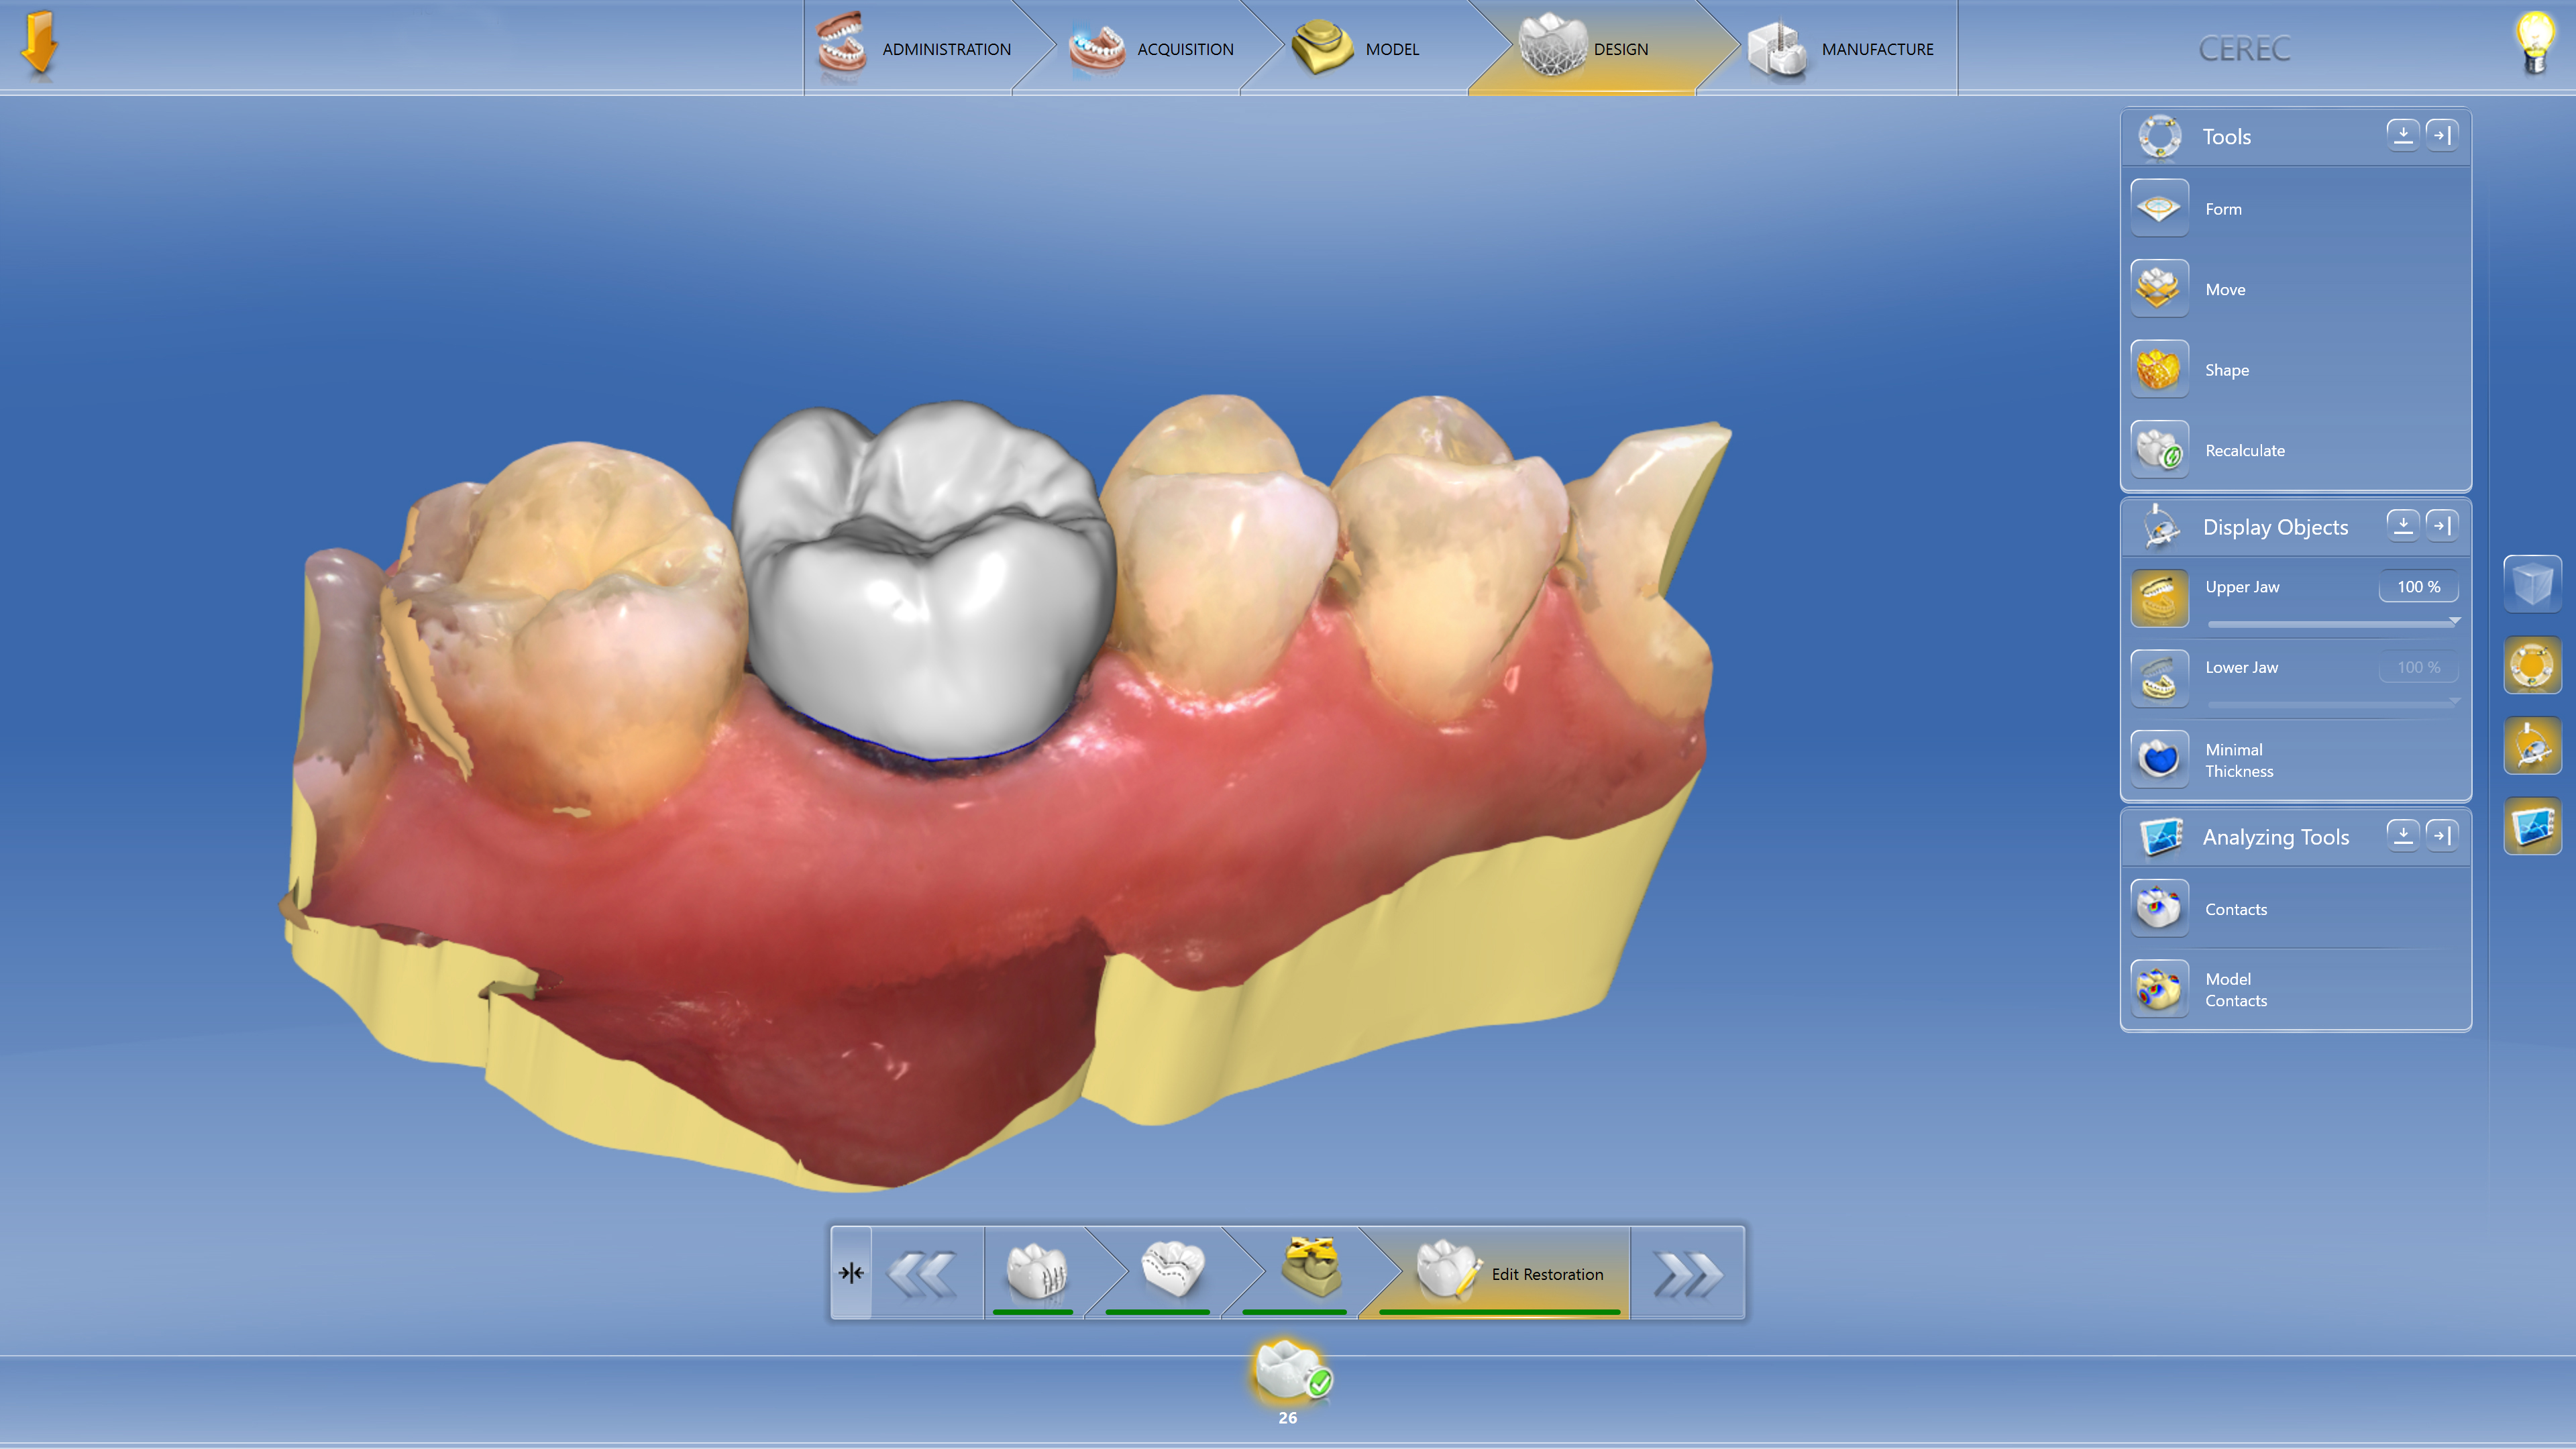 CEREC® One-Visit Dentistry Image - Preferred Dental